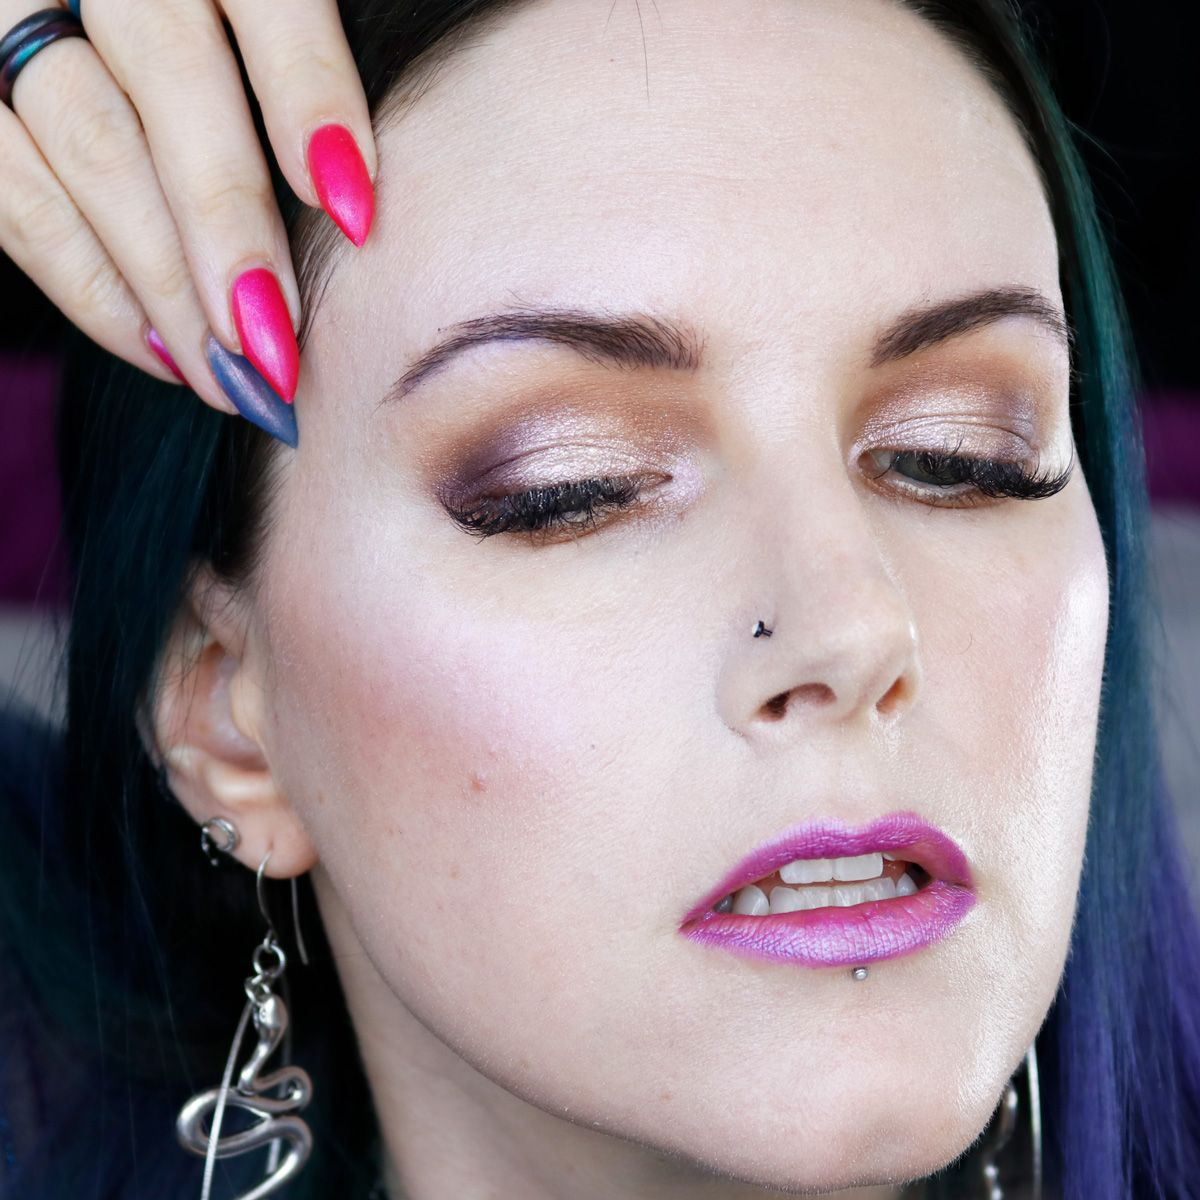 I have a guest YouTube tutorial from one of my favorite people in the world – Courtney from Phyrra.net! She's showing us how to do an easy subtle purple makeup look that is especially great for hooded eyes! If you're not sure what to do with bold colors, this tutorial is for you!